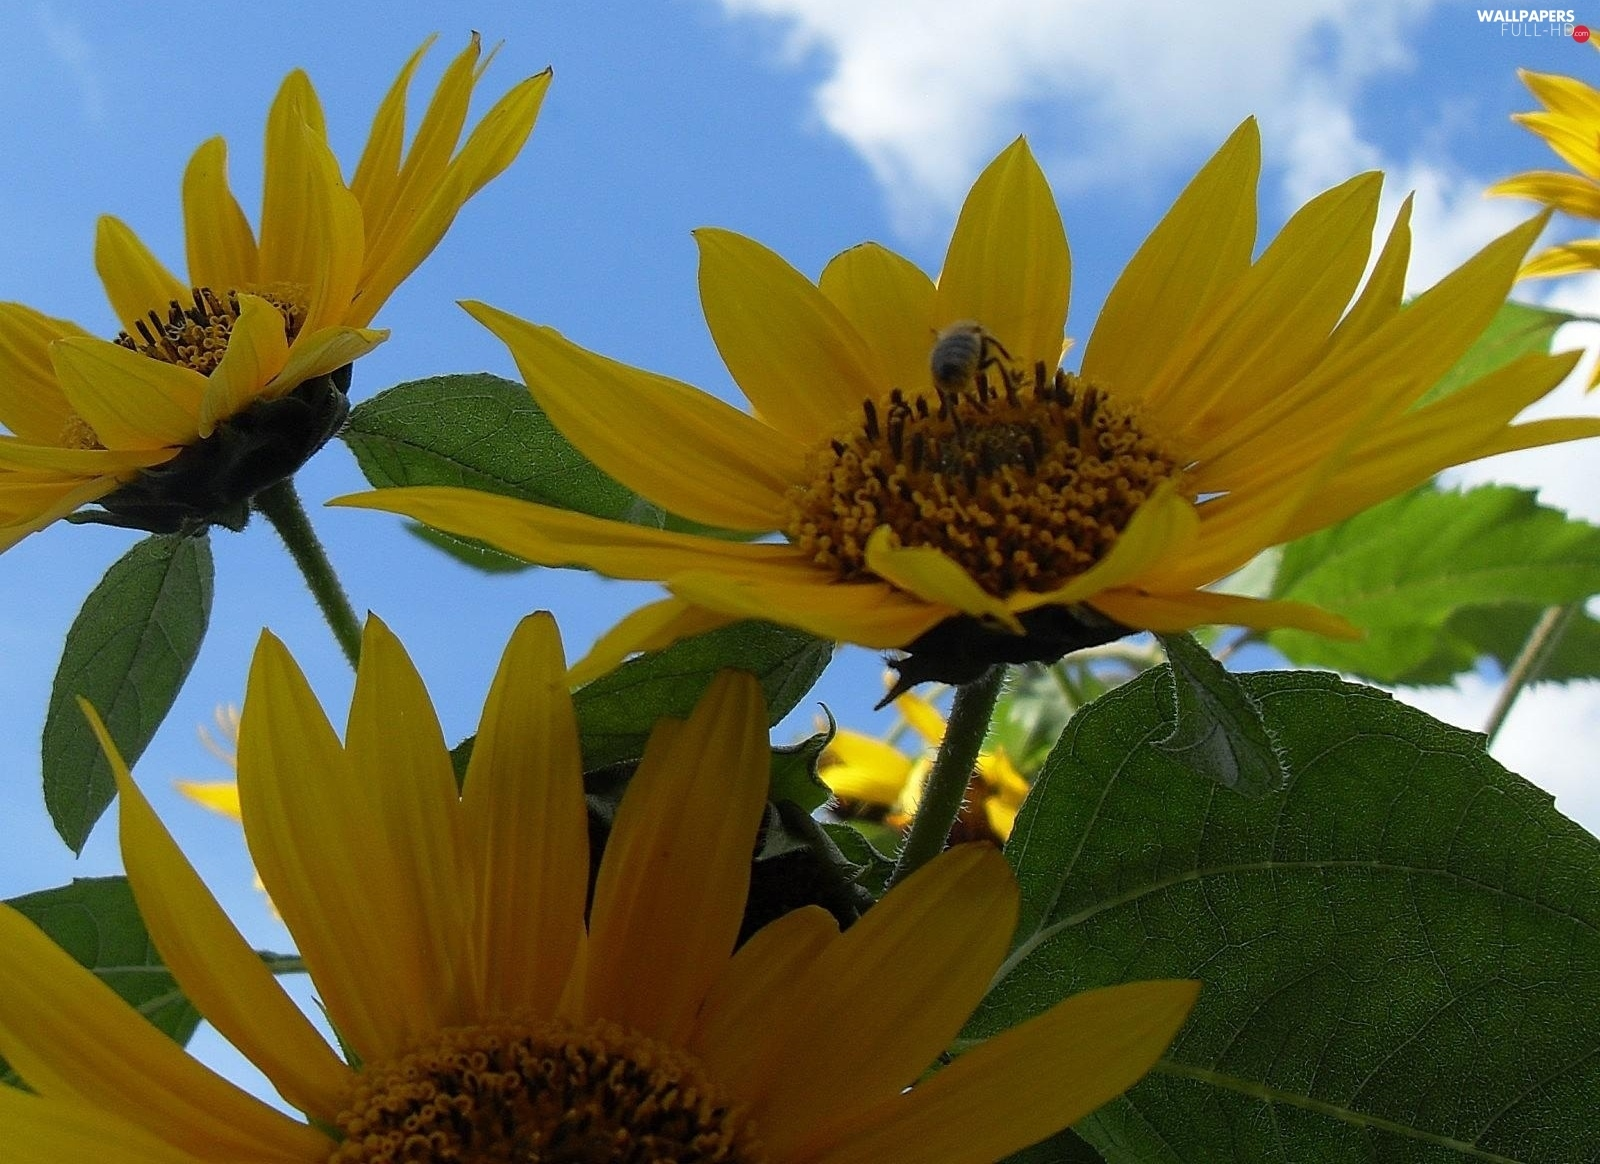 Insect, Nice sunflowers